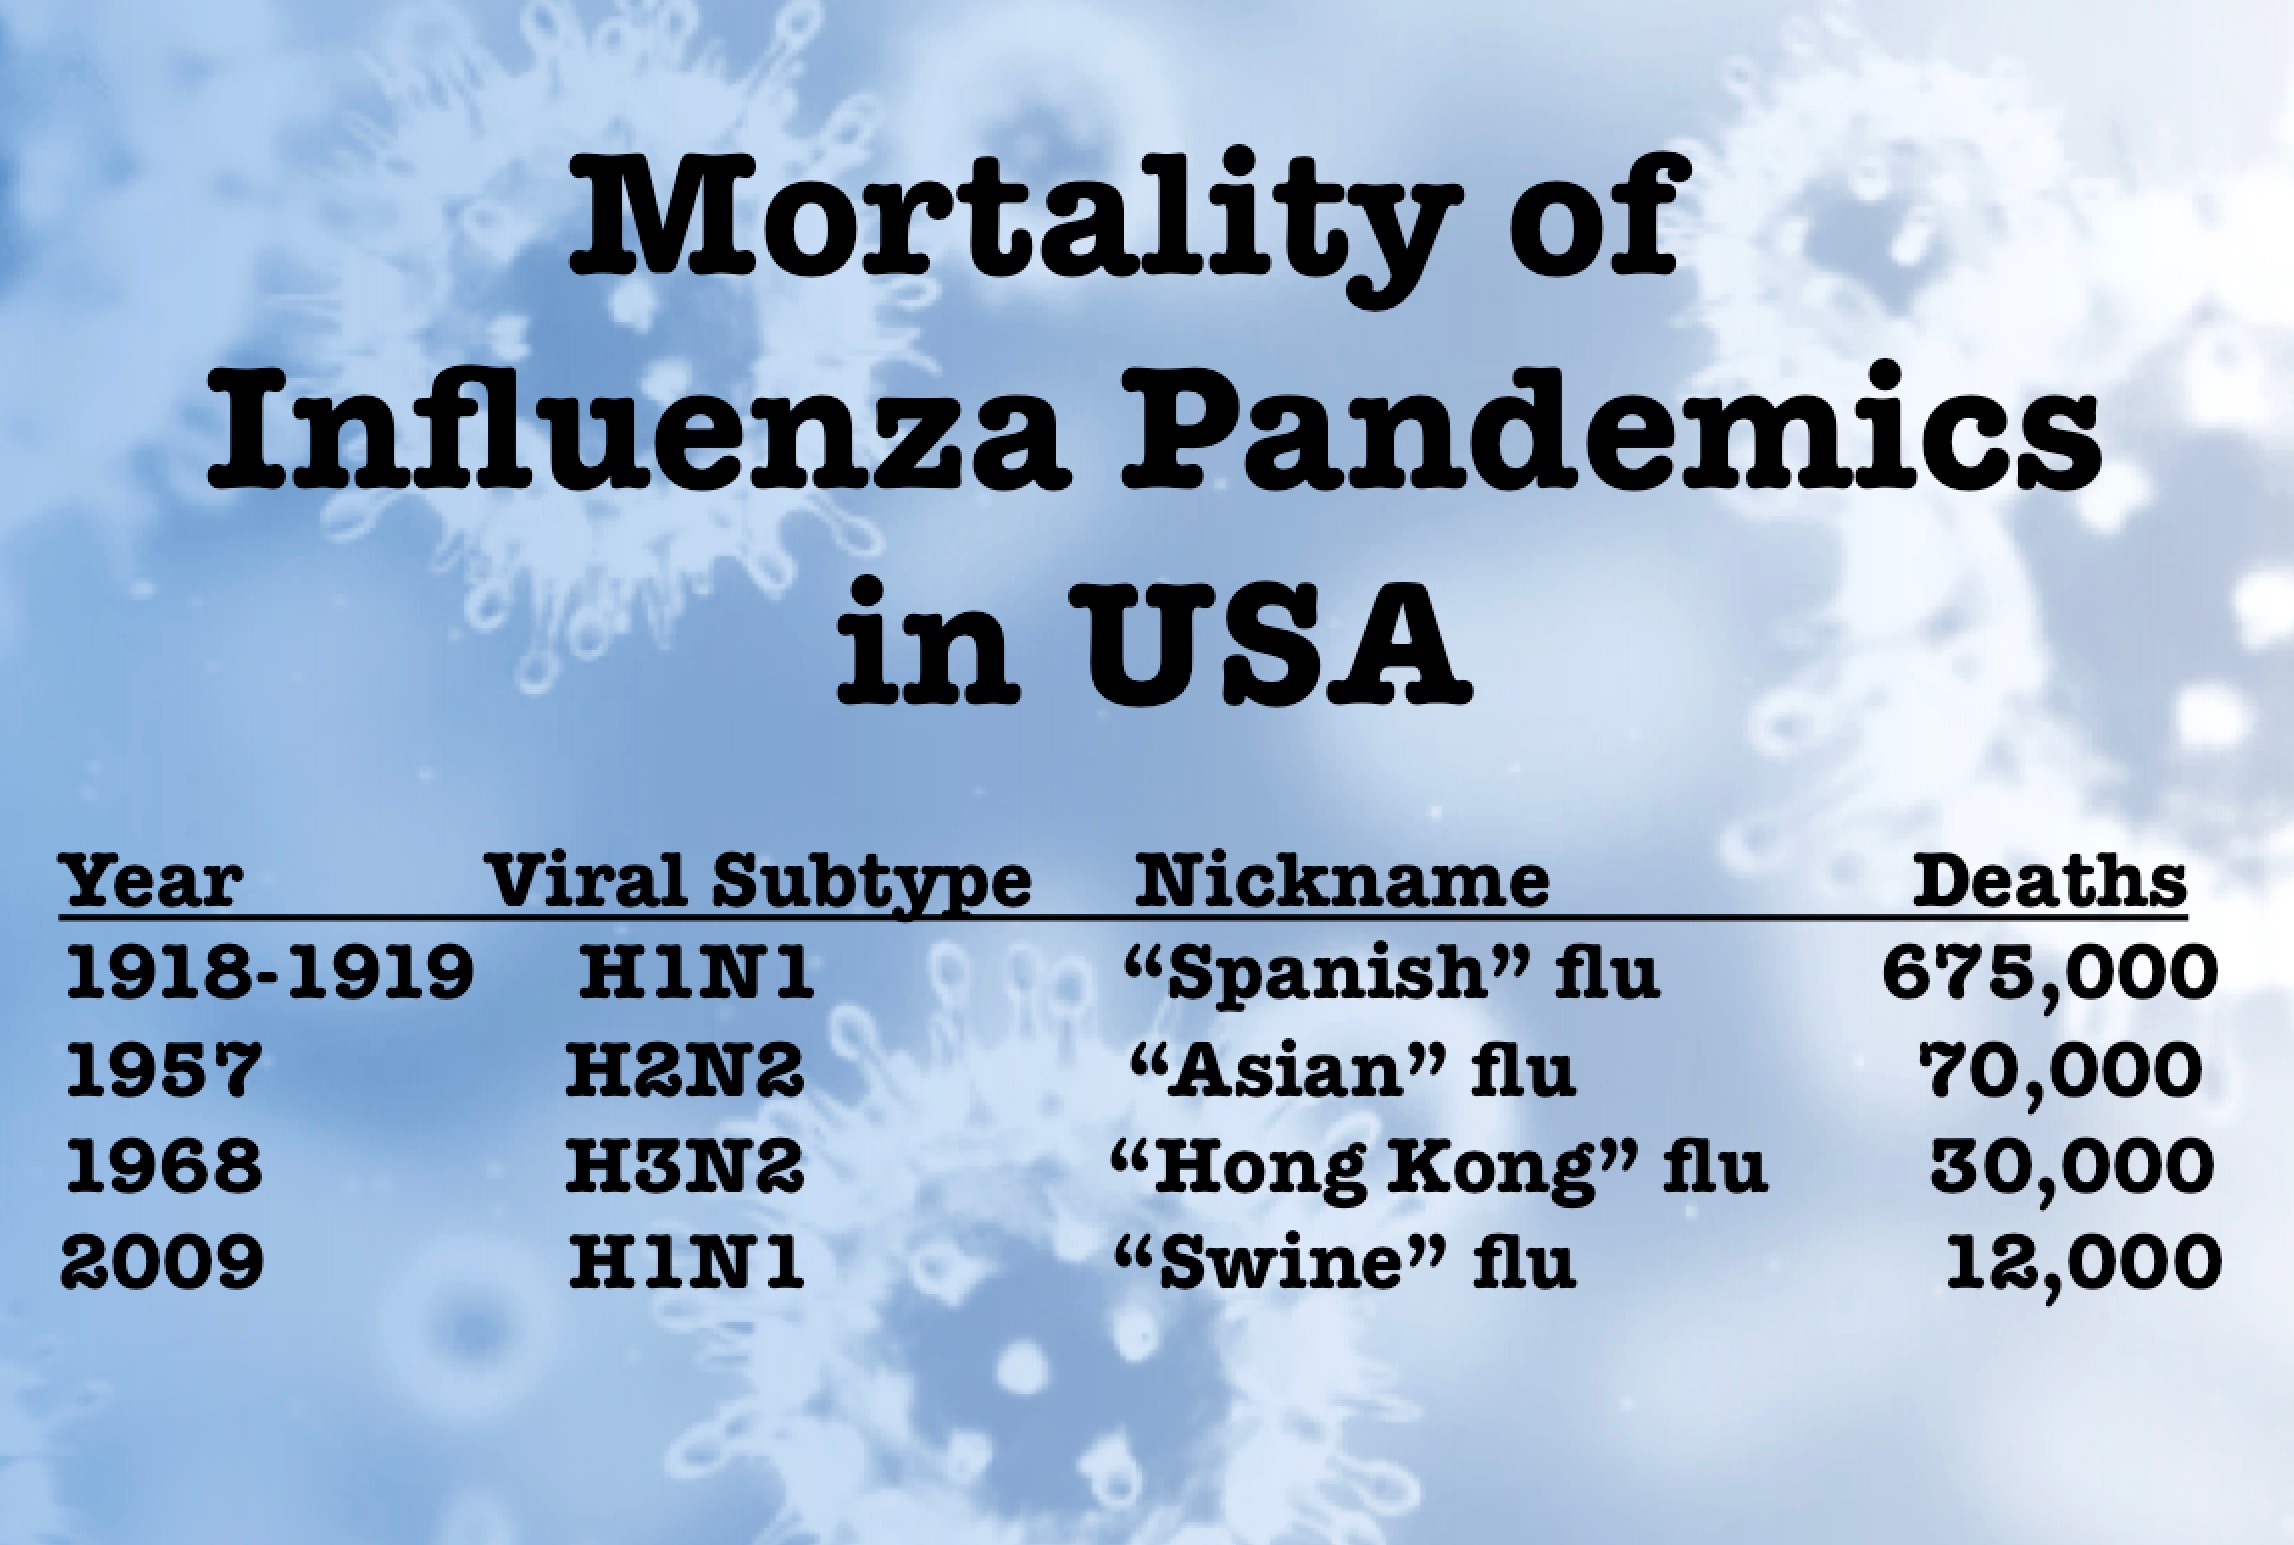 Flu Pandemics in the USA